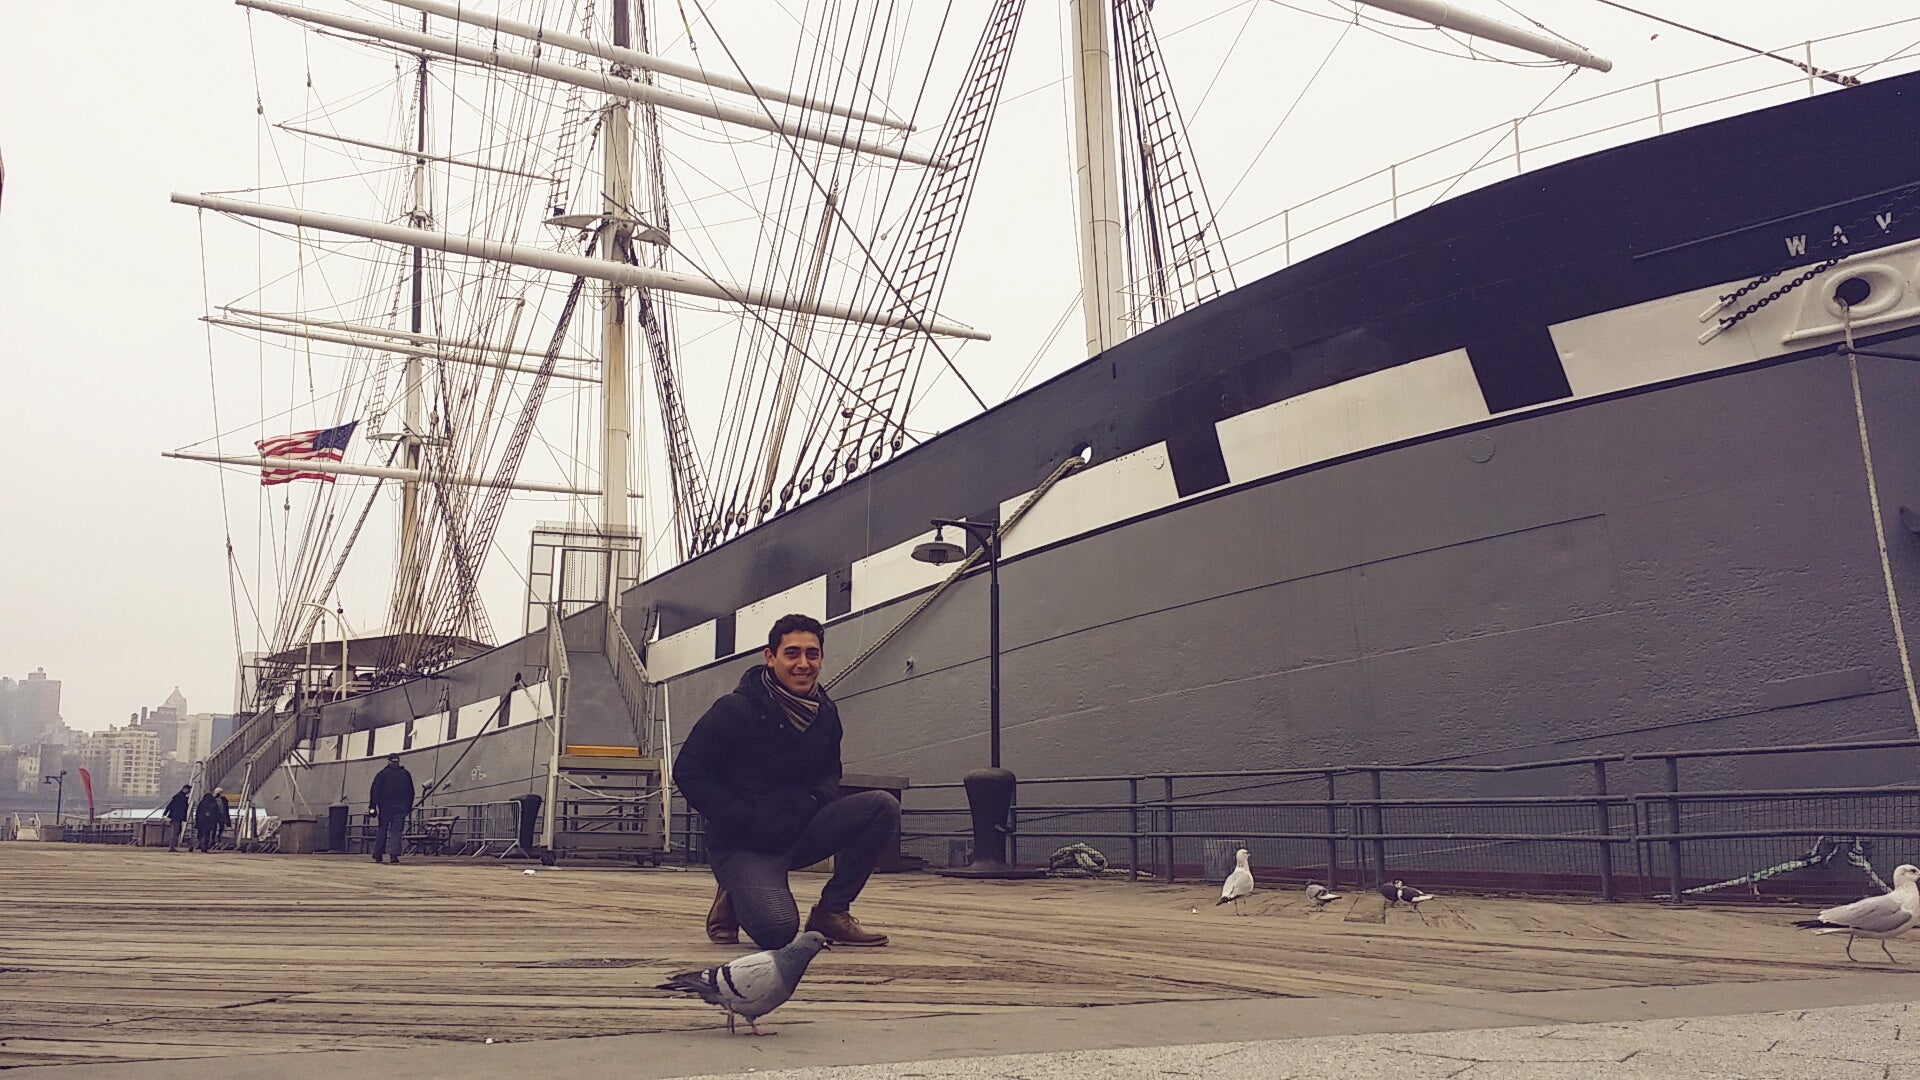 Paseo en el velero Clipper City Tall Ship